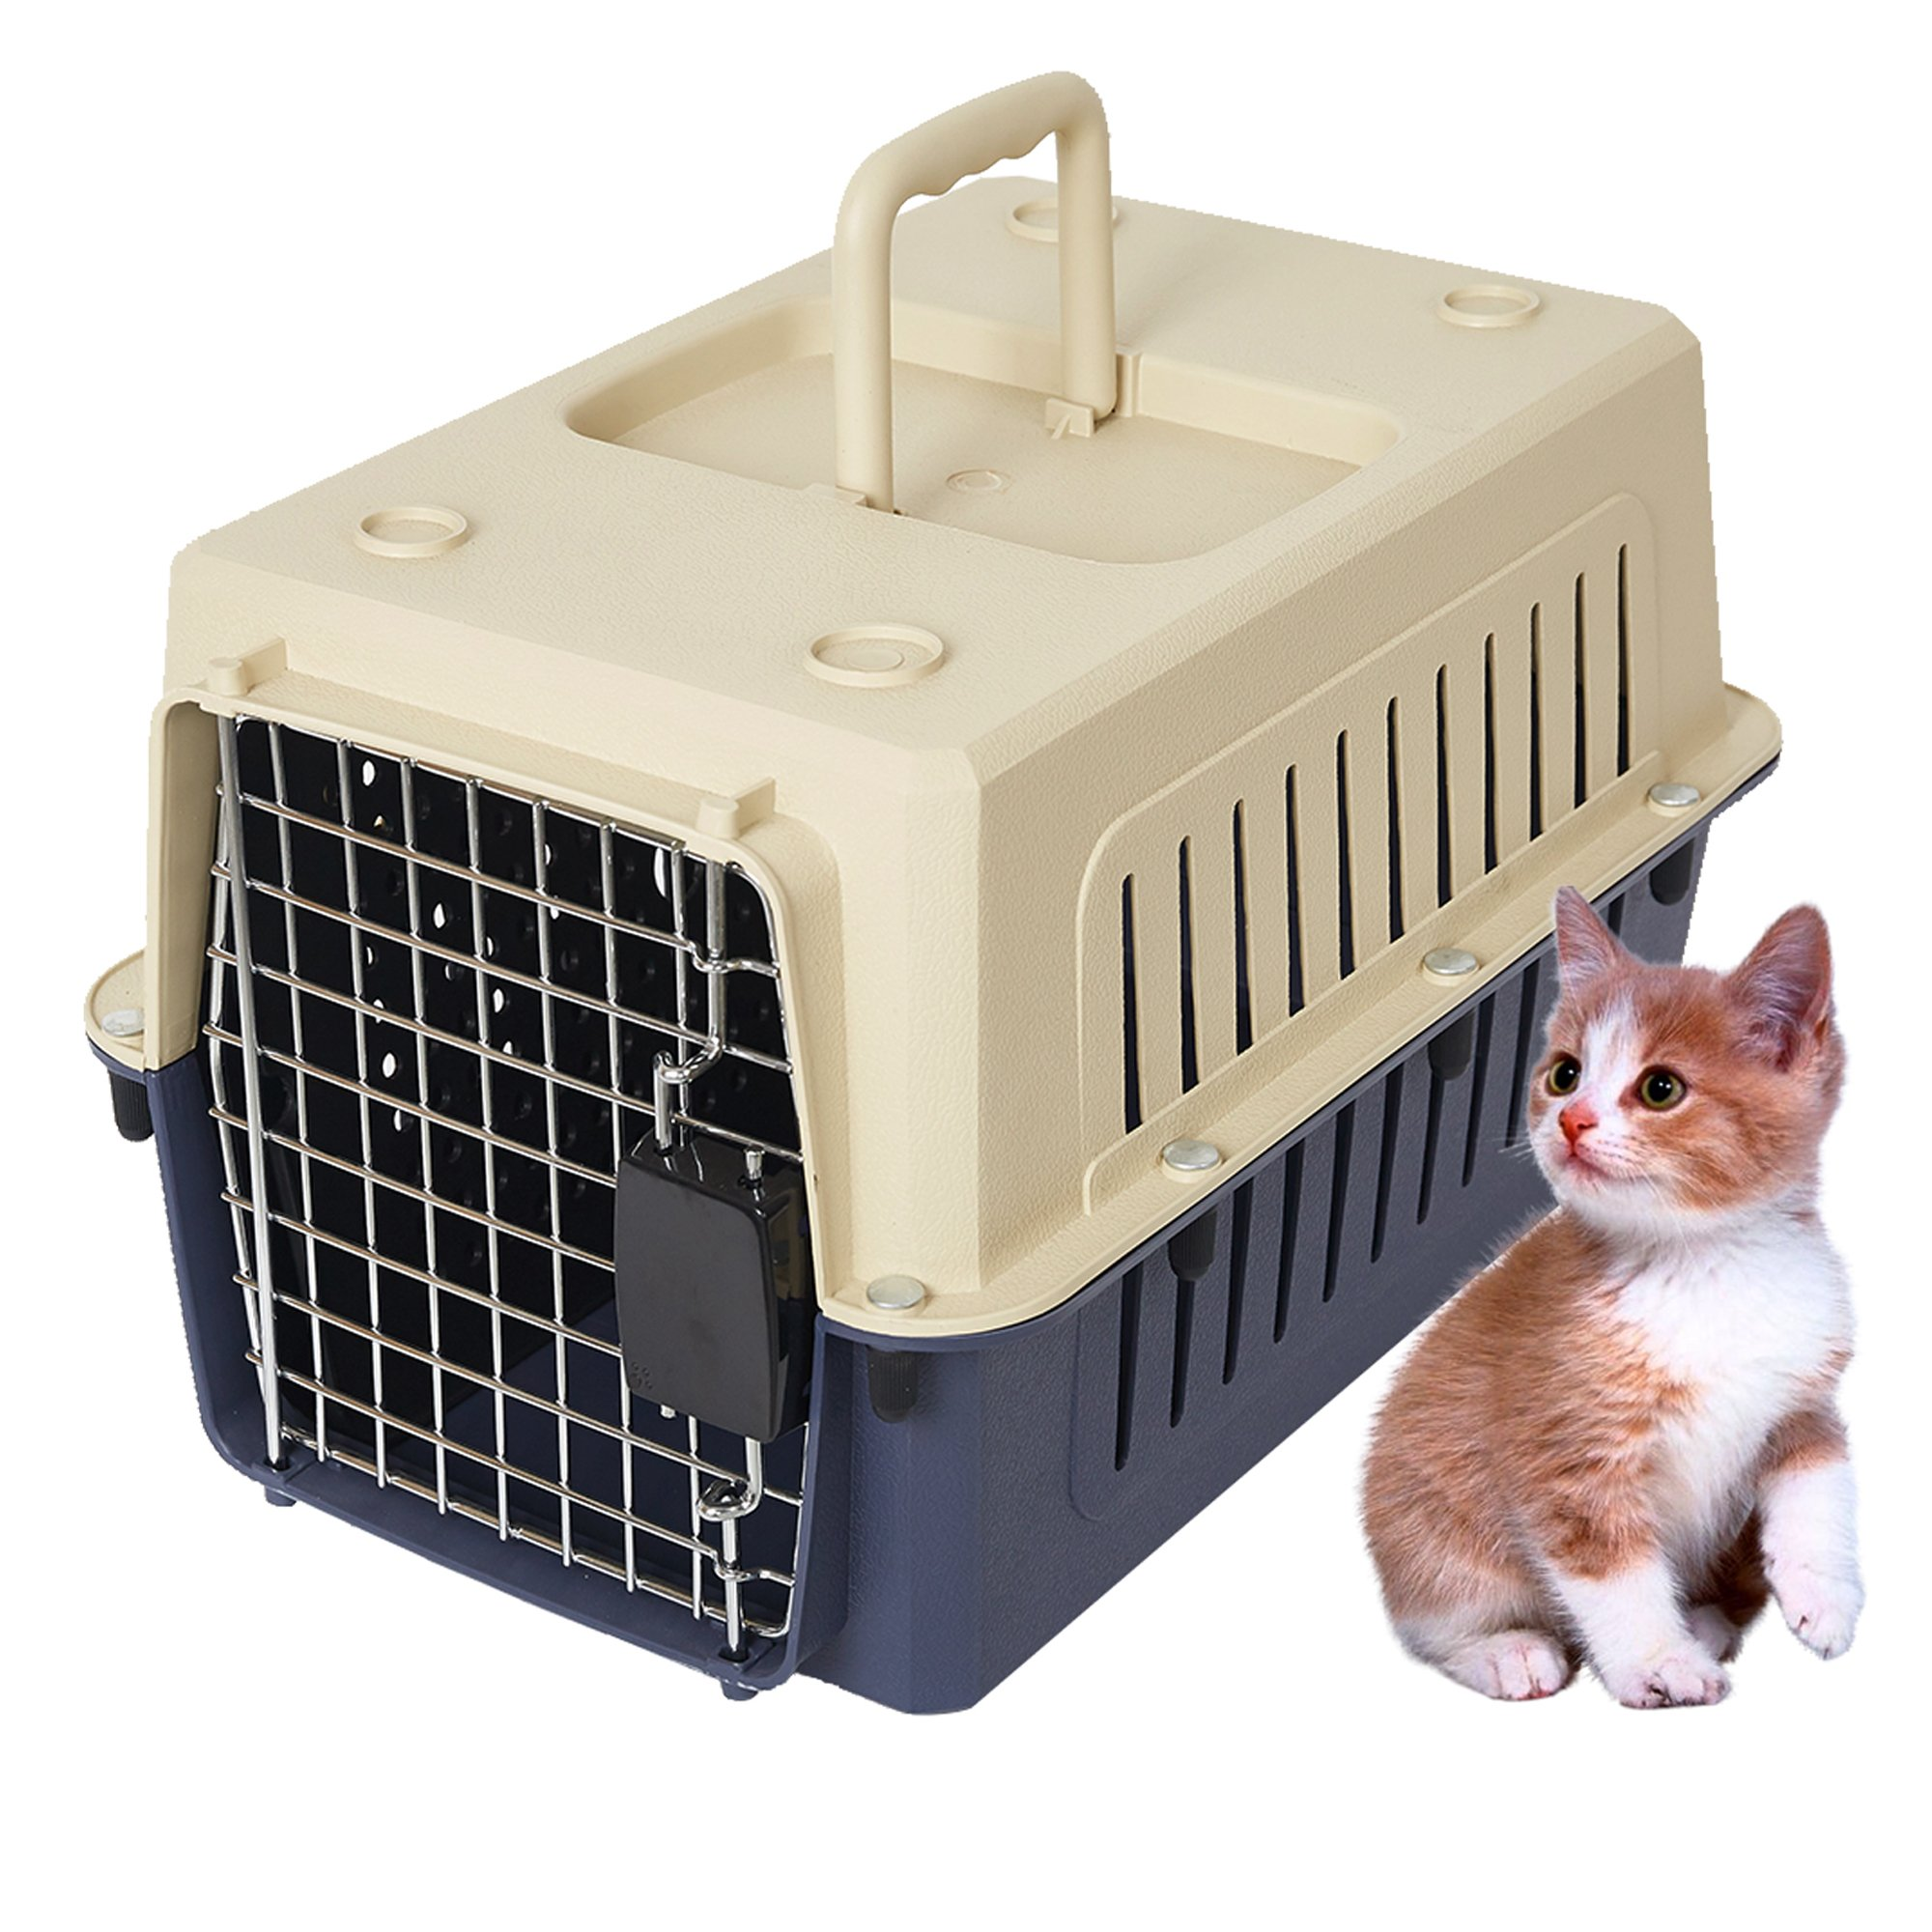 Lucky Tree 4 Size Pet Carrier Cat Carriers Kennel Crate Airline Approved Kitty Travel Cage Plastic Lightweight and Safe…